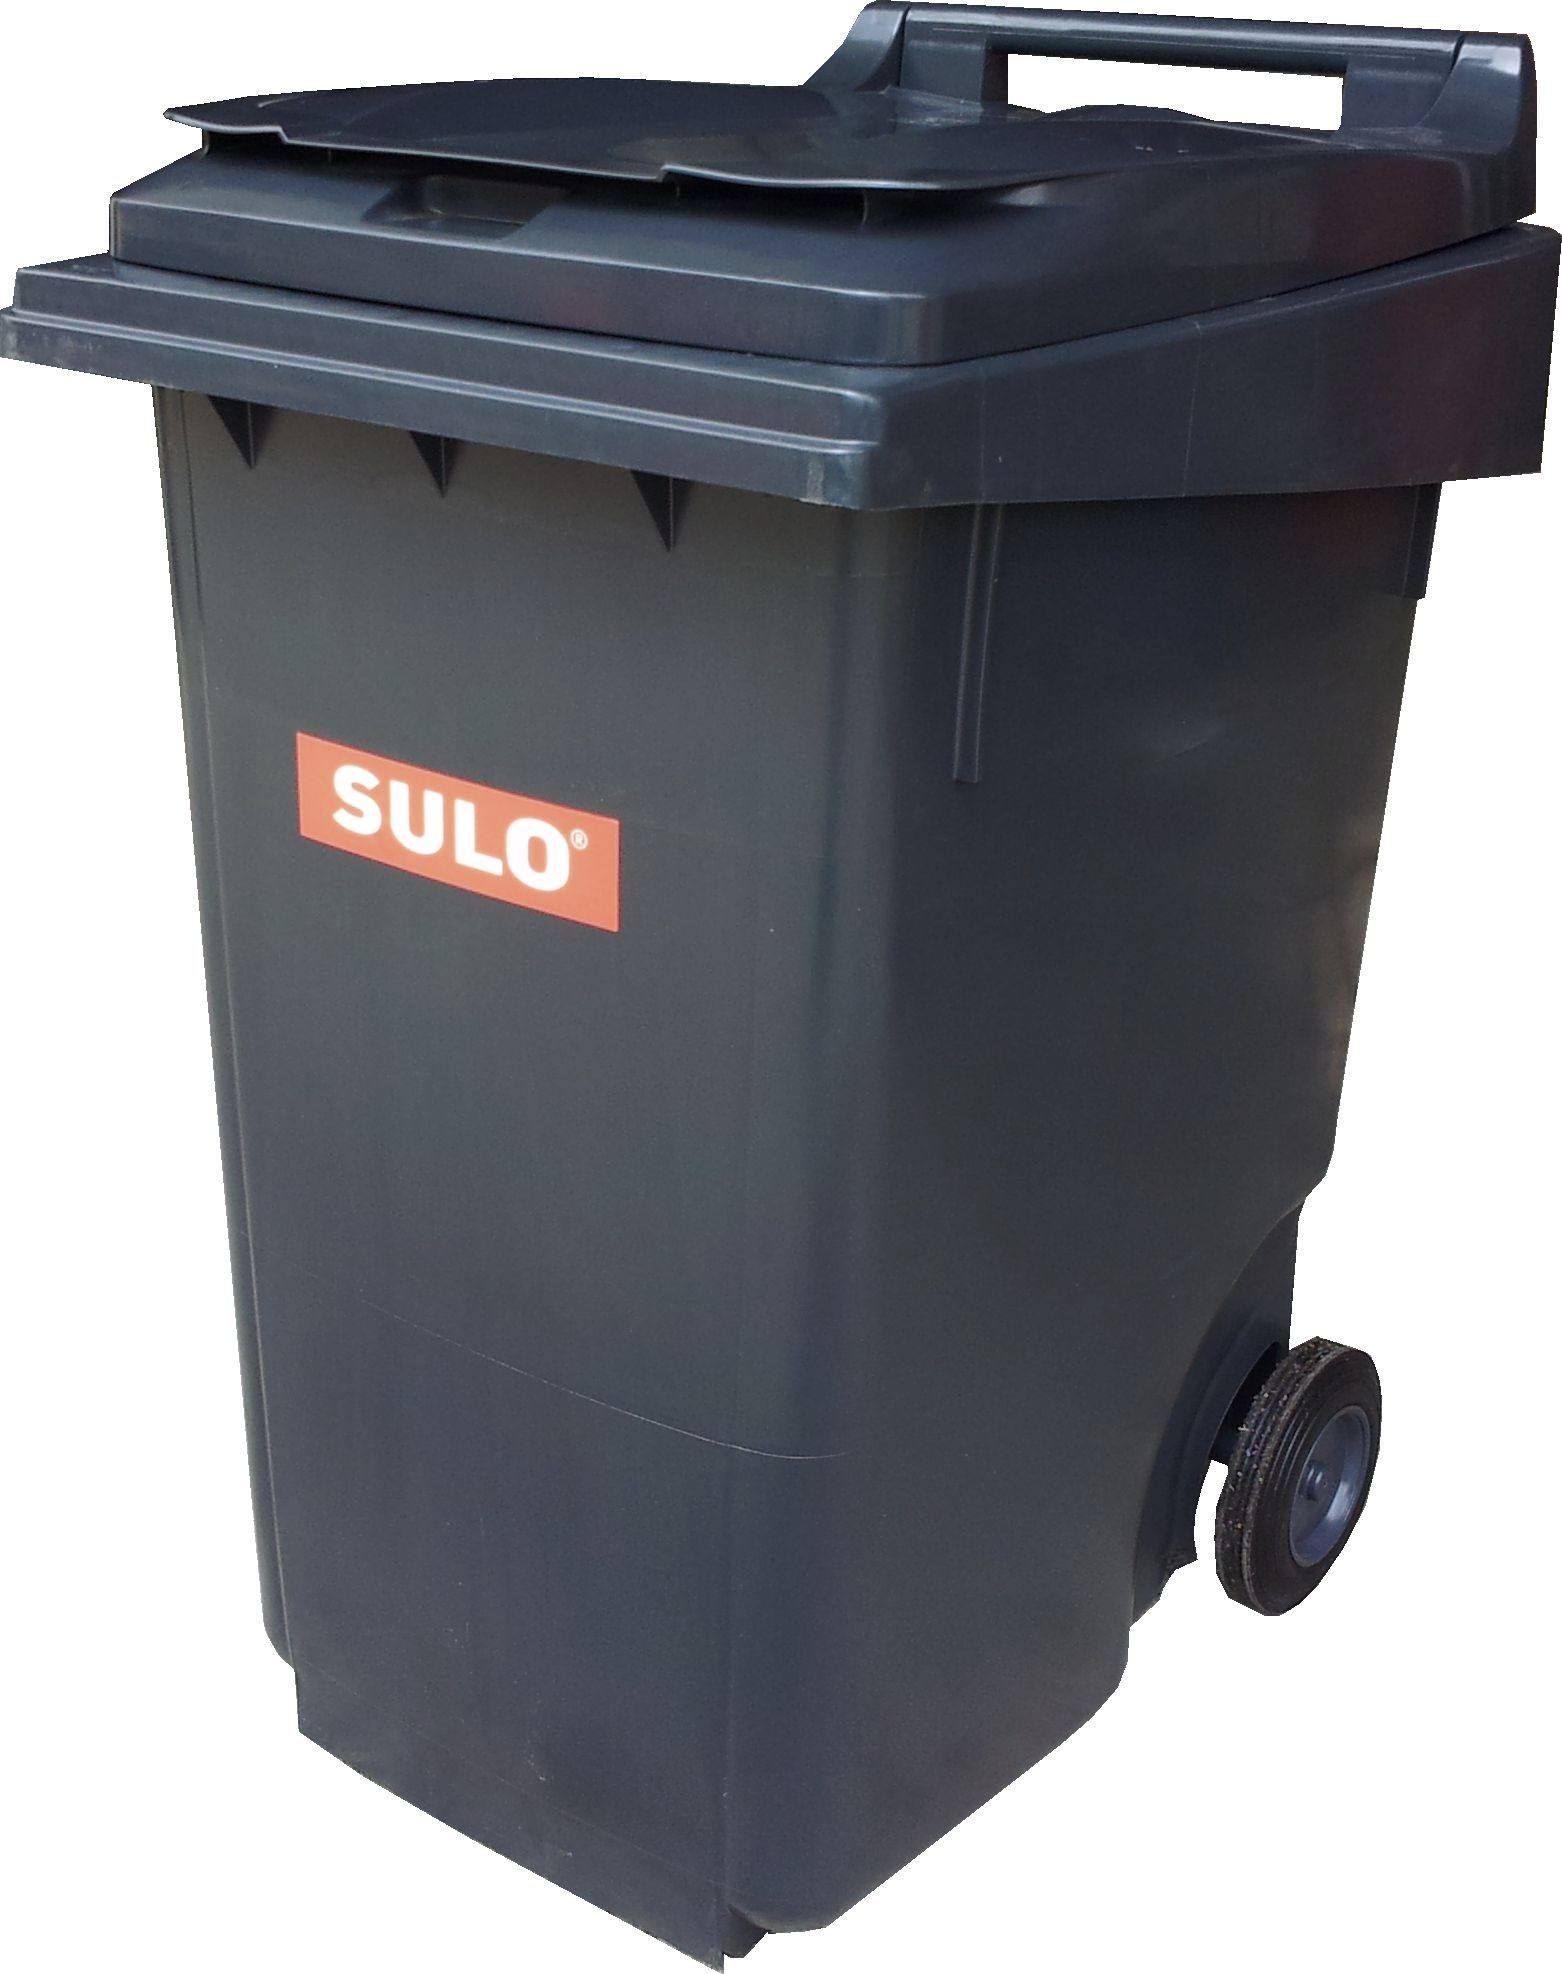 SULO 360L 2 WHEEL PLASTIC MOBILE GARBAGE BIN